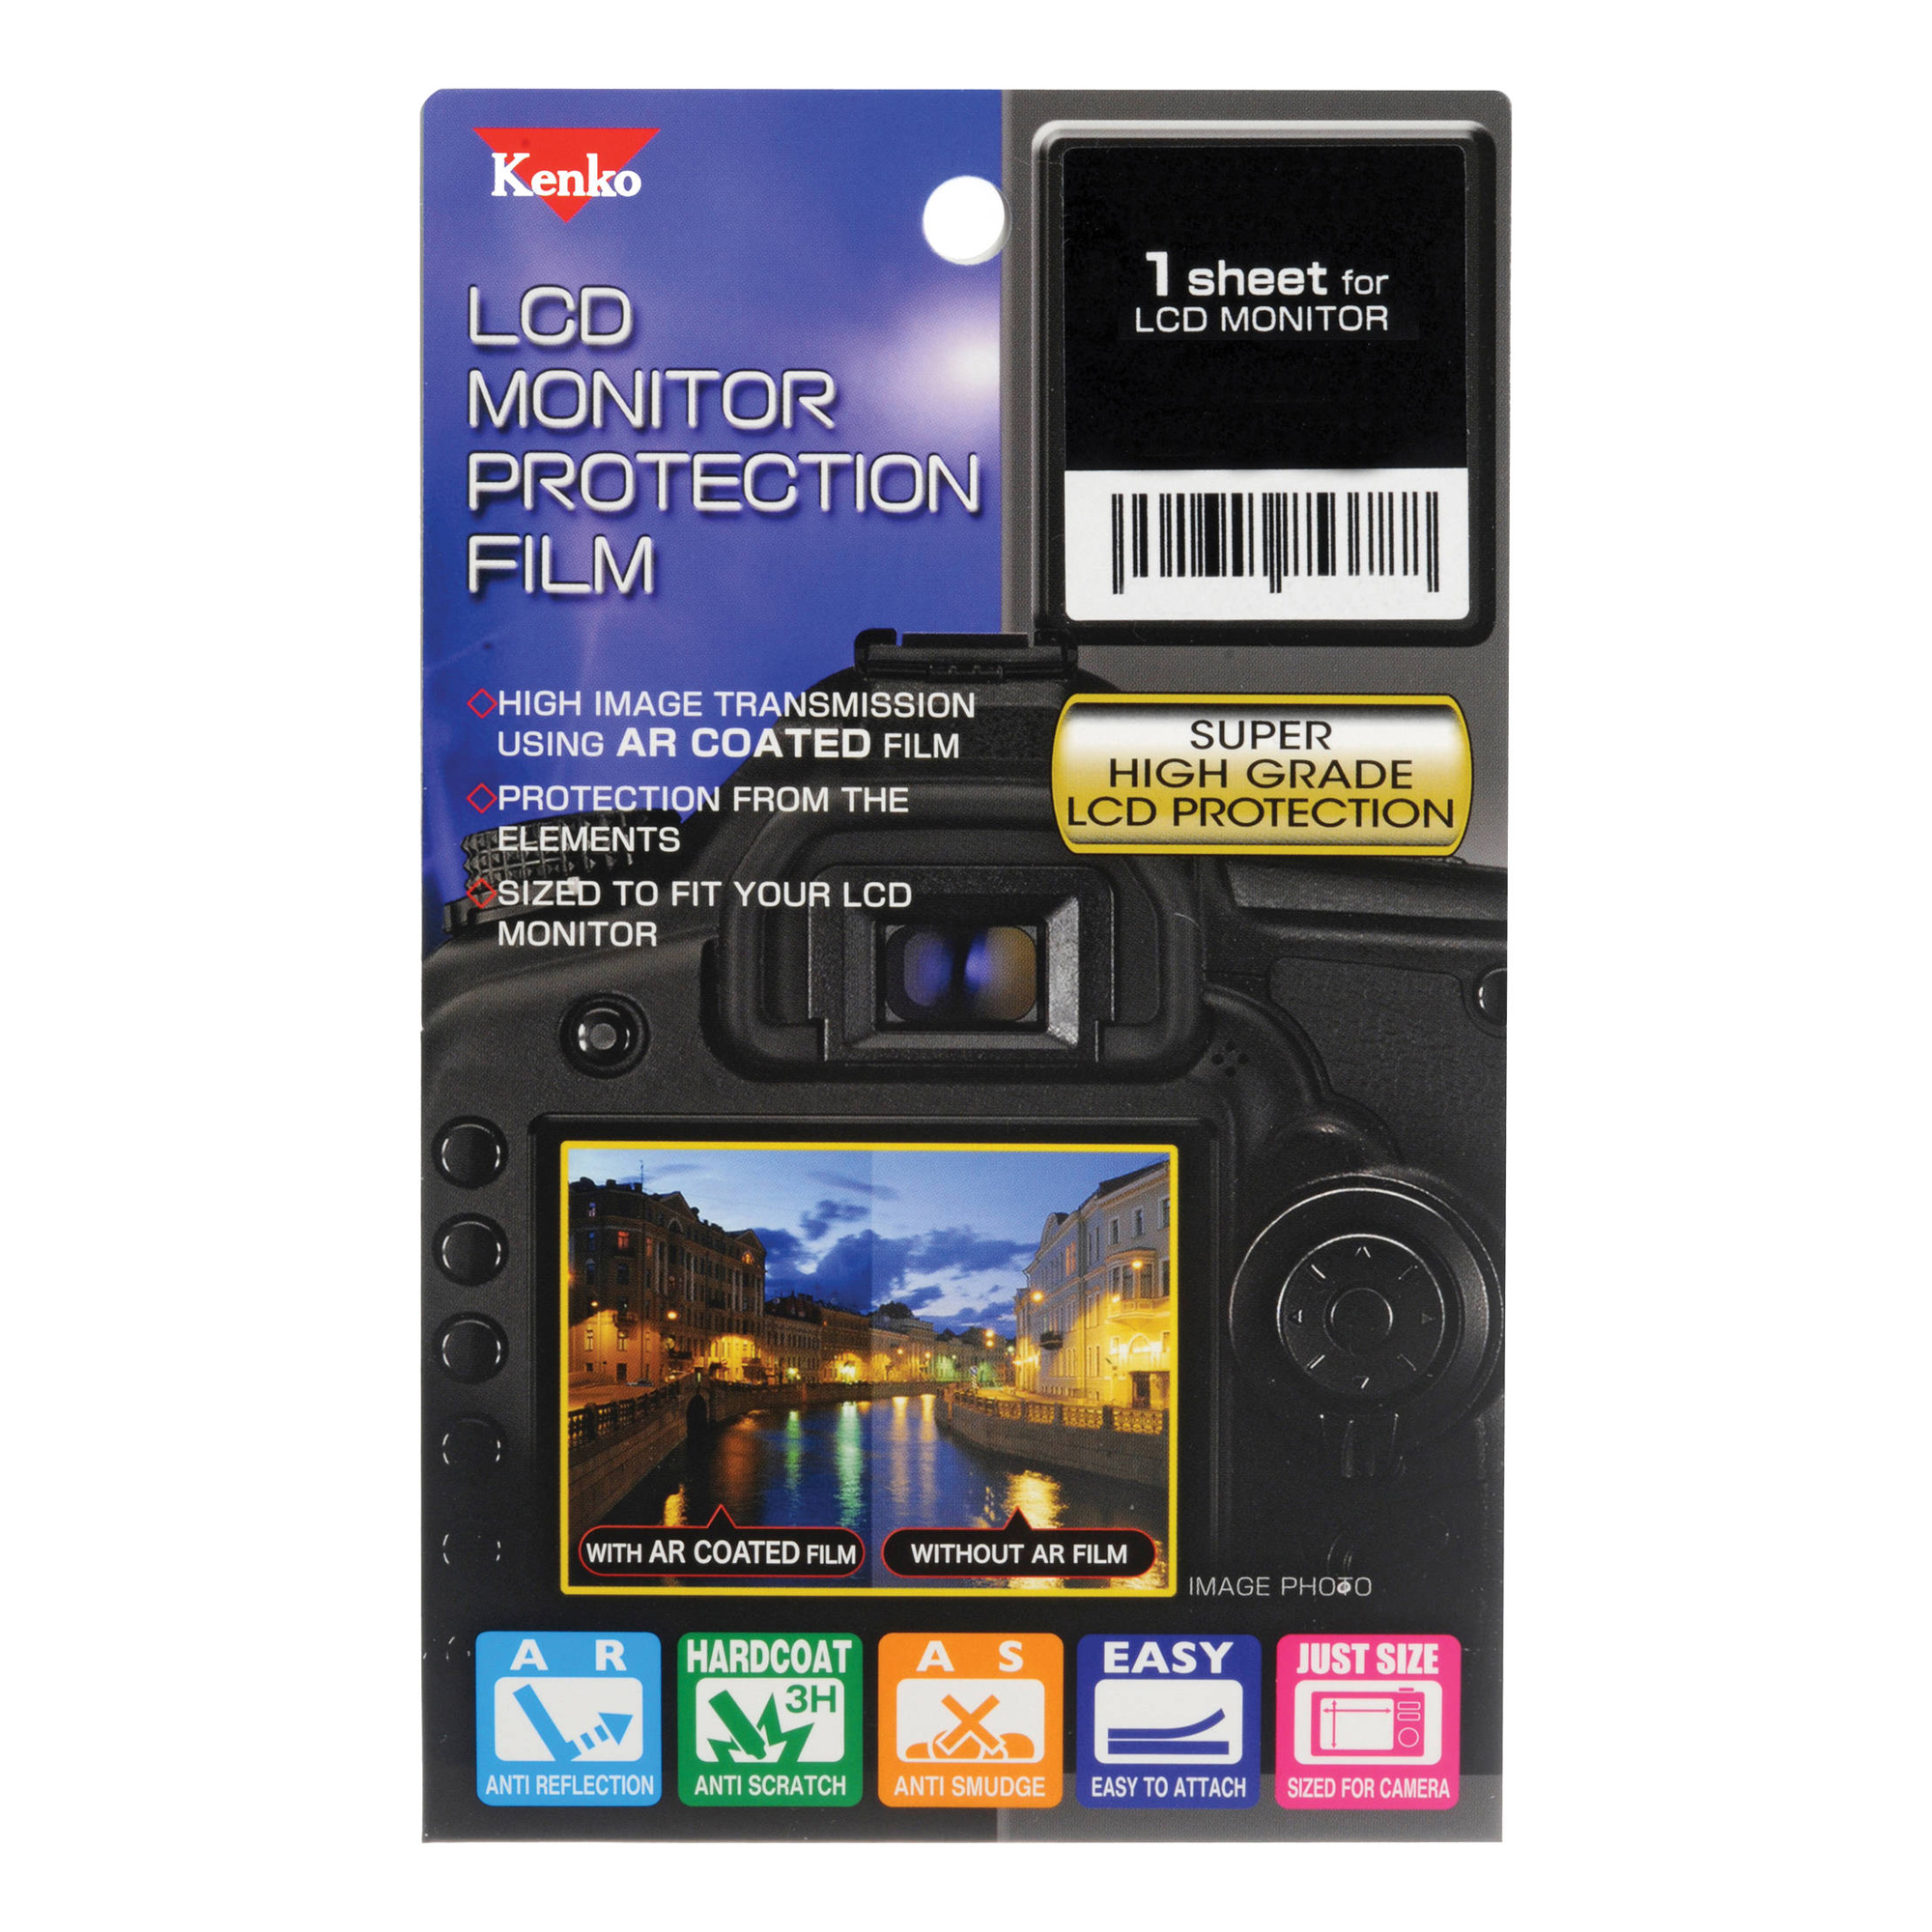 LCD Monitor Protection Film for the Sony a77 II Camera